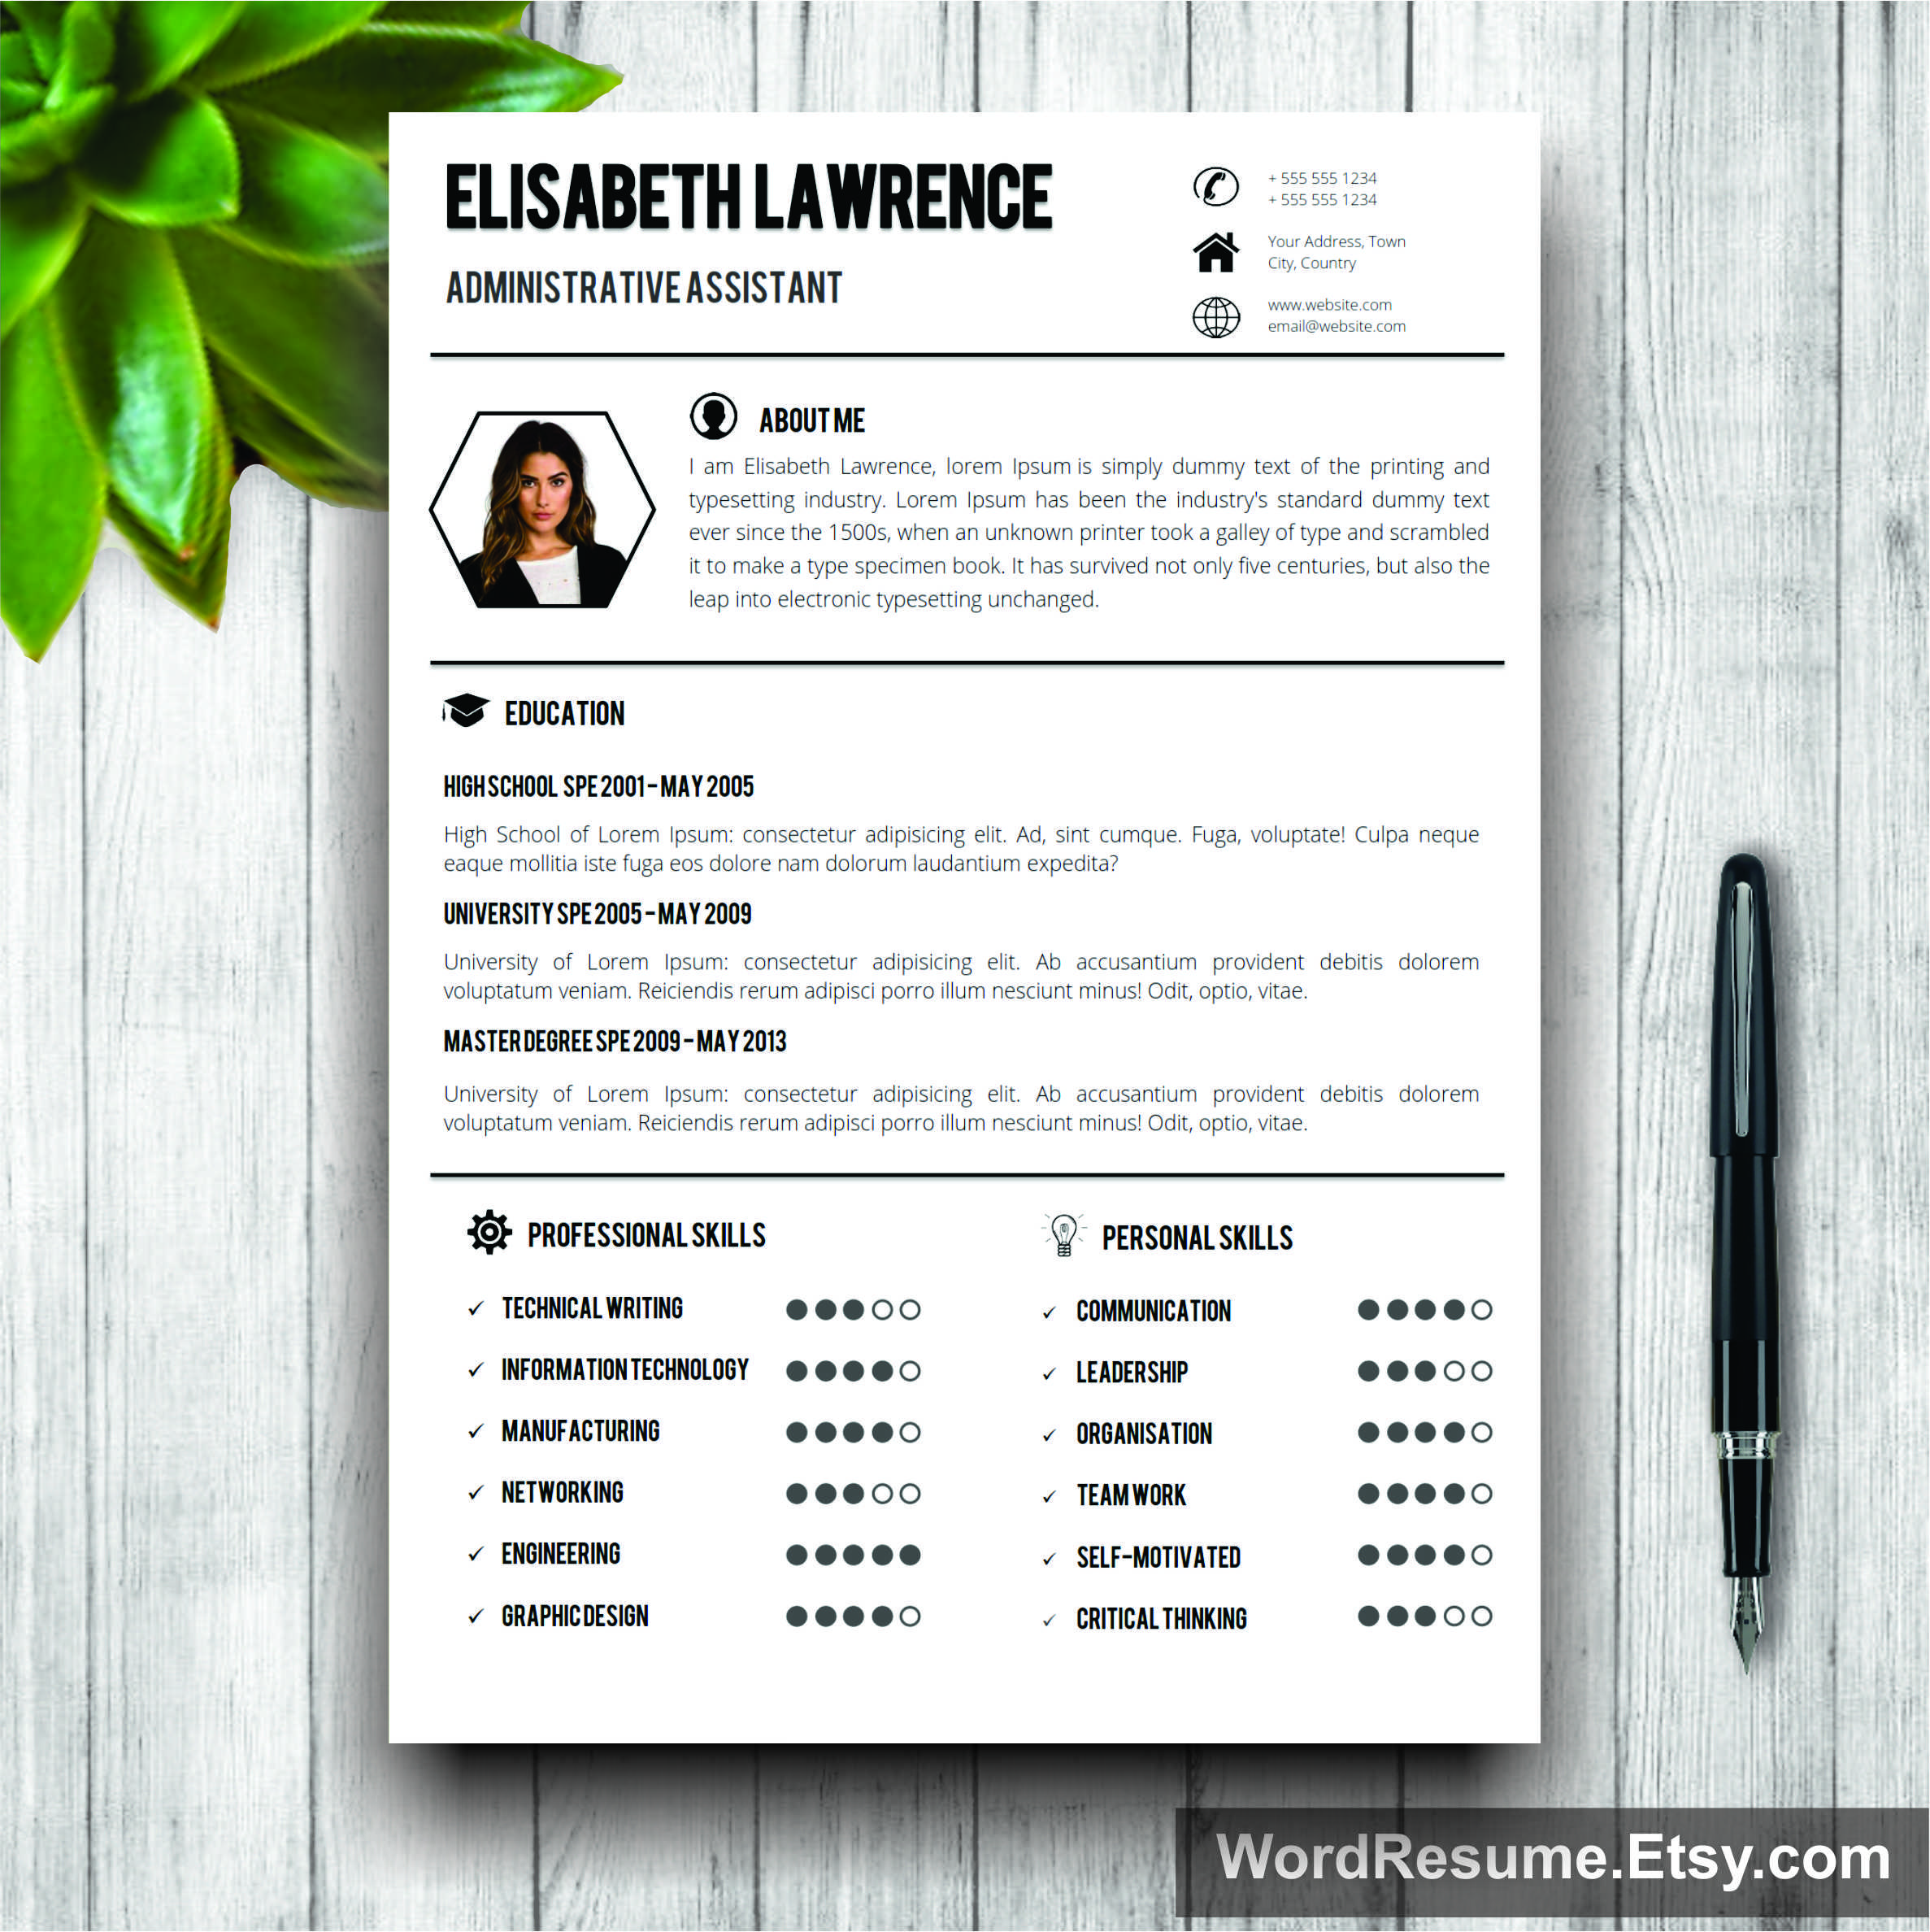 resume template mockup 1 - How To Find The Resume Template In Microsoft Word 2007